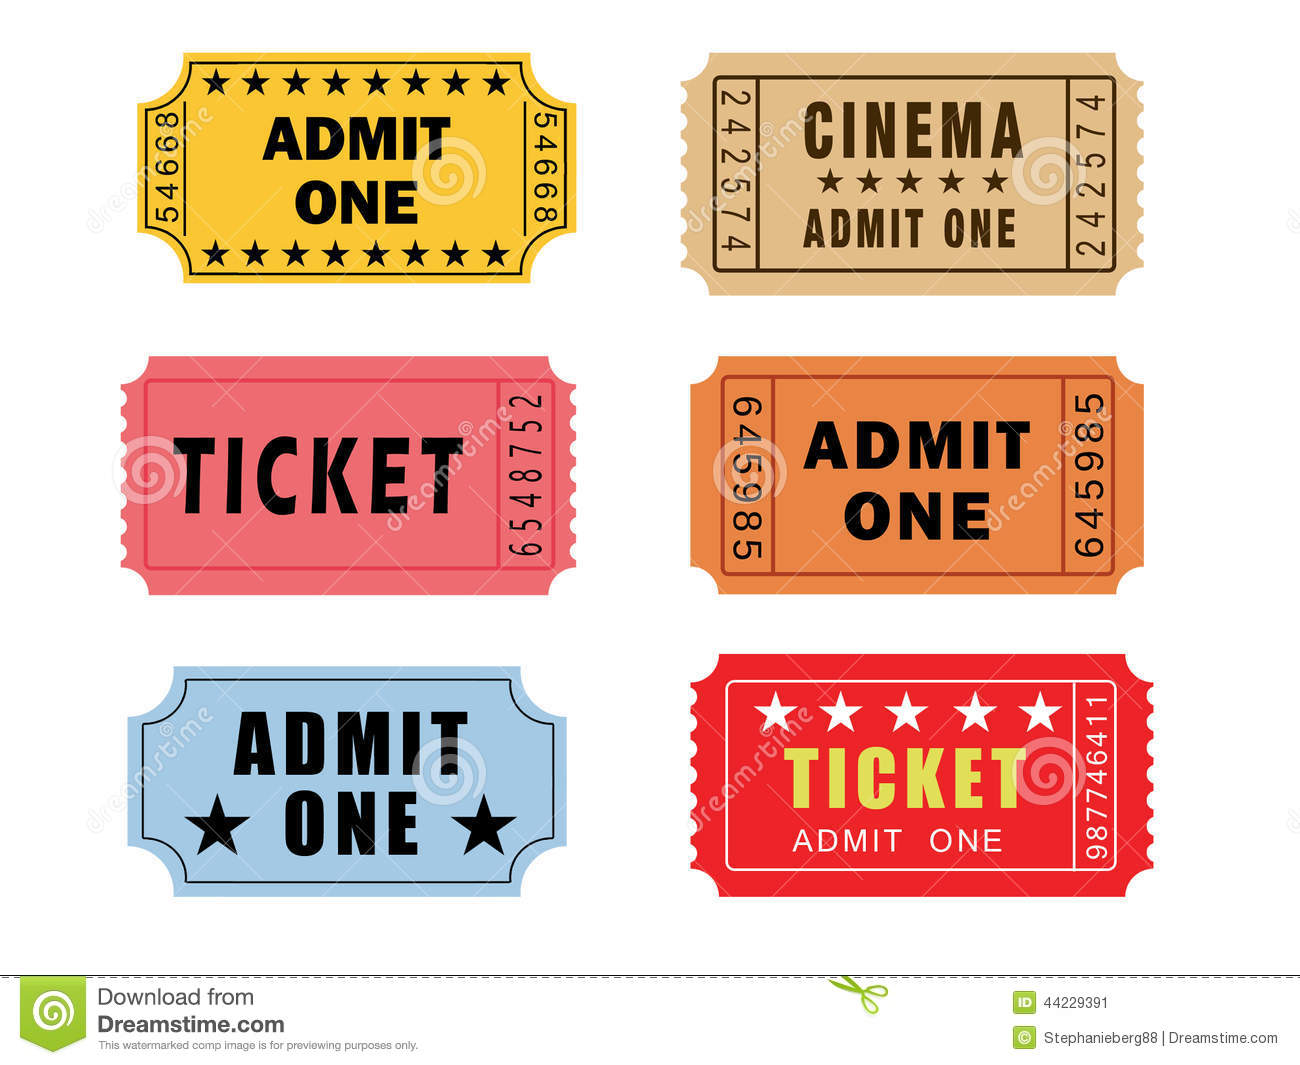 types of theatres Get movie showtimes, find movie theaters, buy movie tickets in the honolulu,  hawaii area and purchase gift cards online at consolidated theatres.